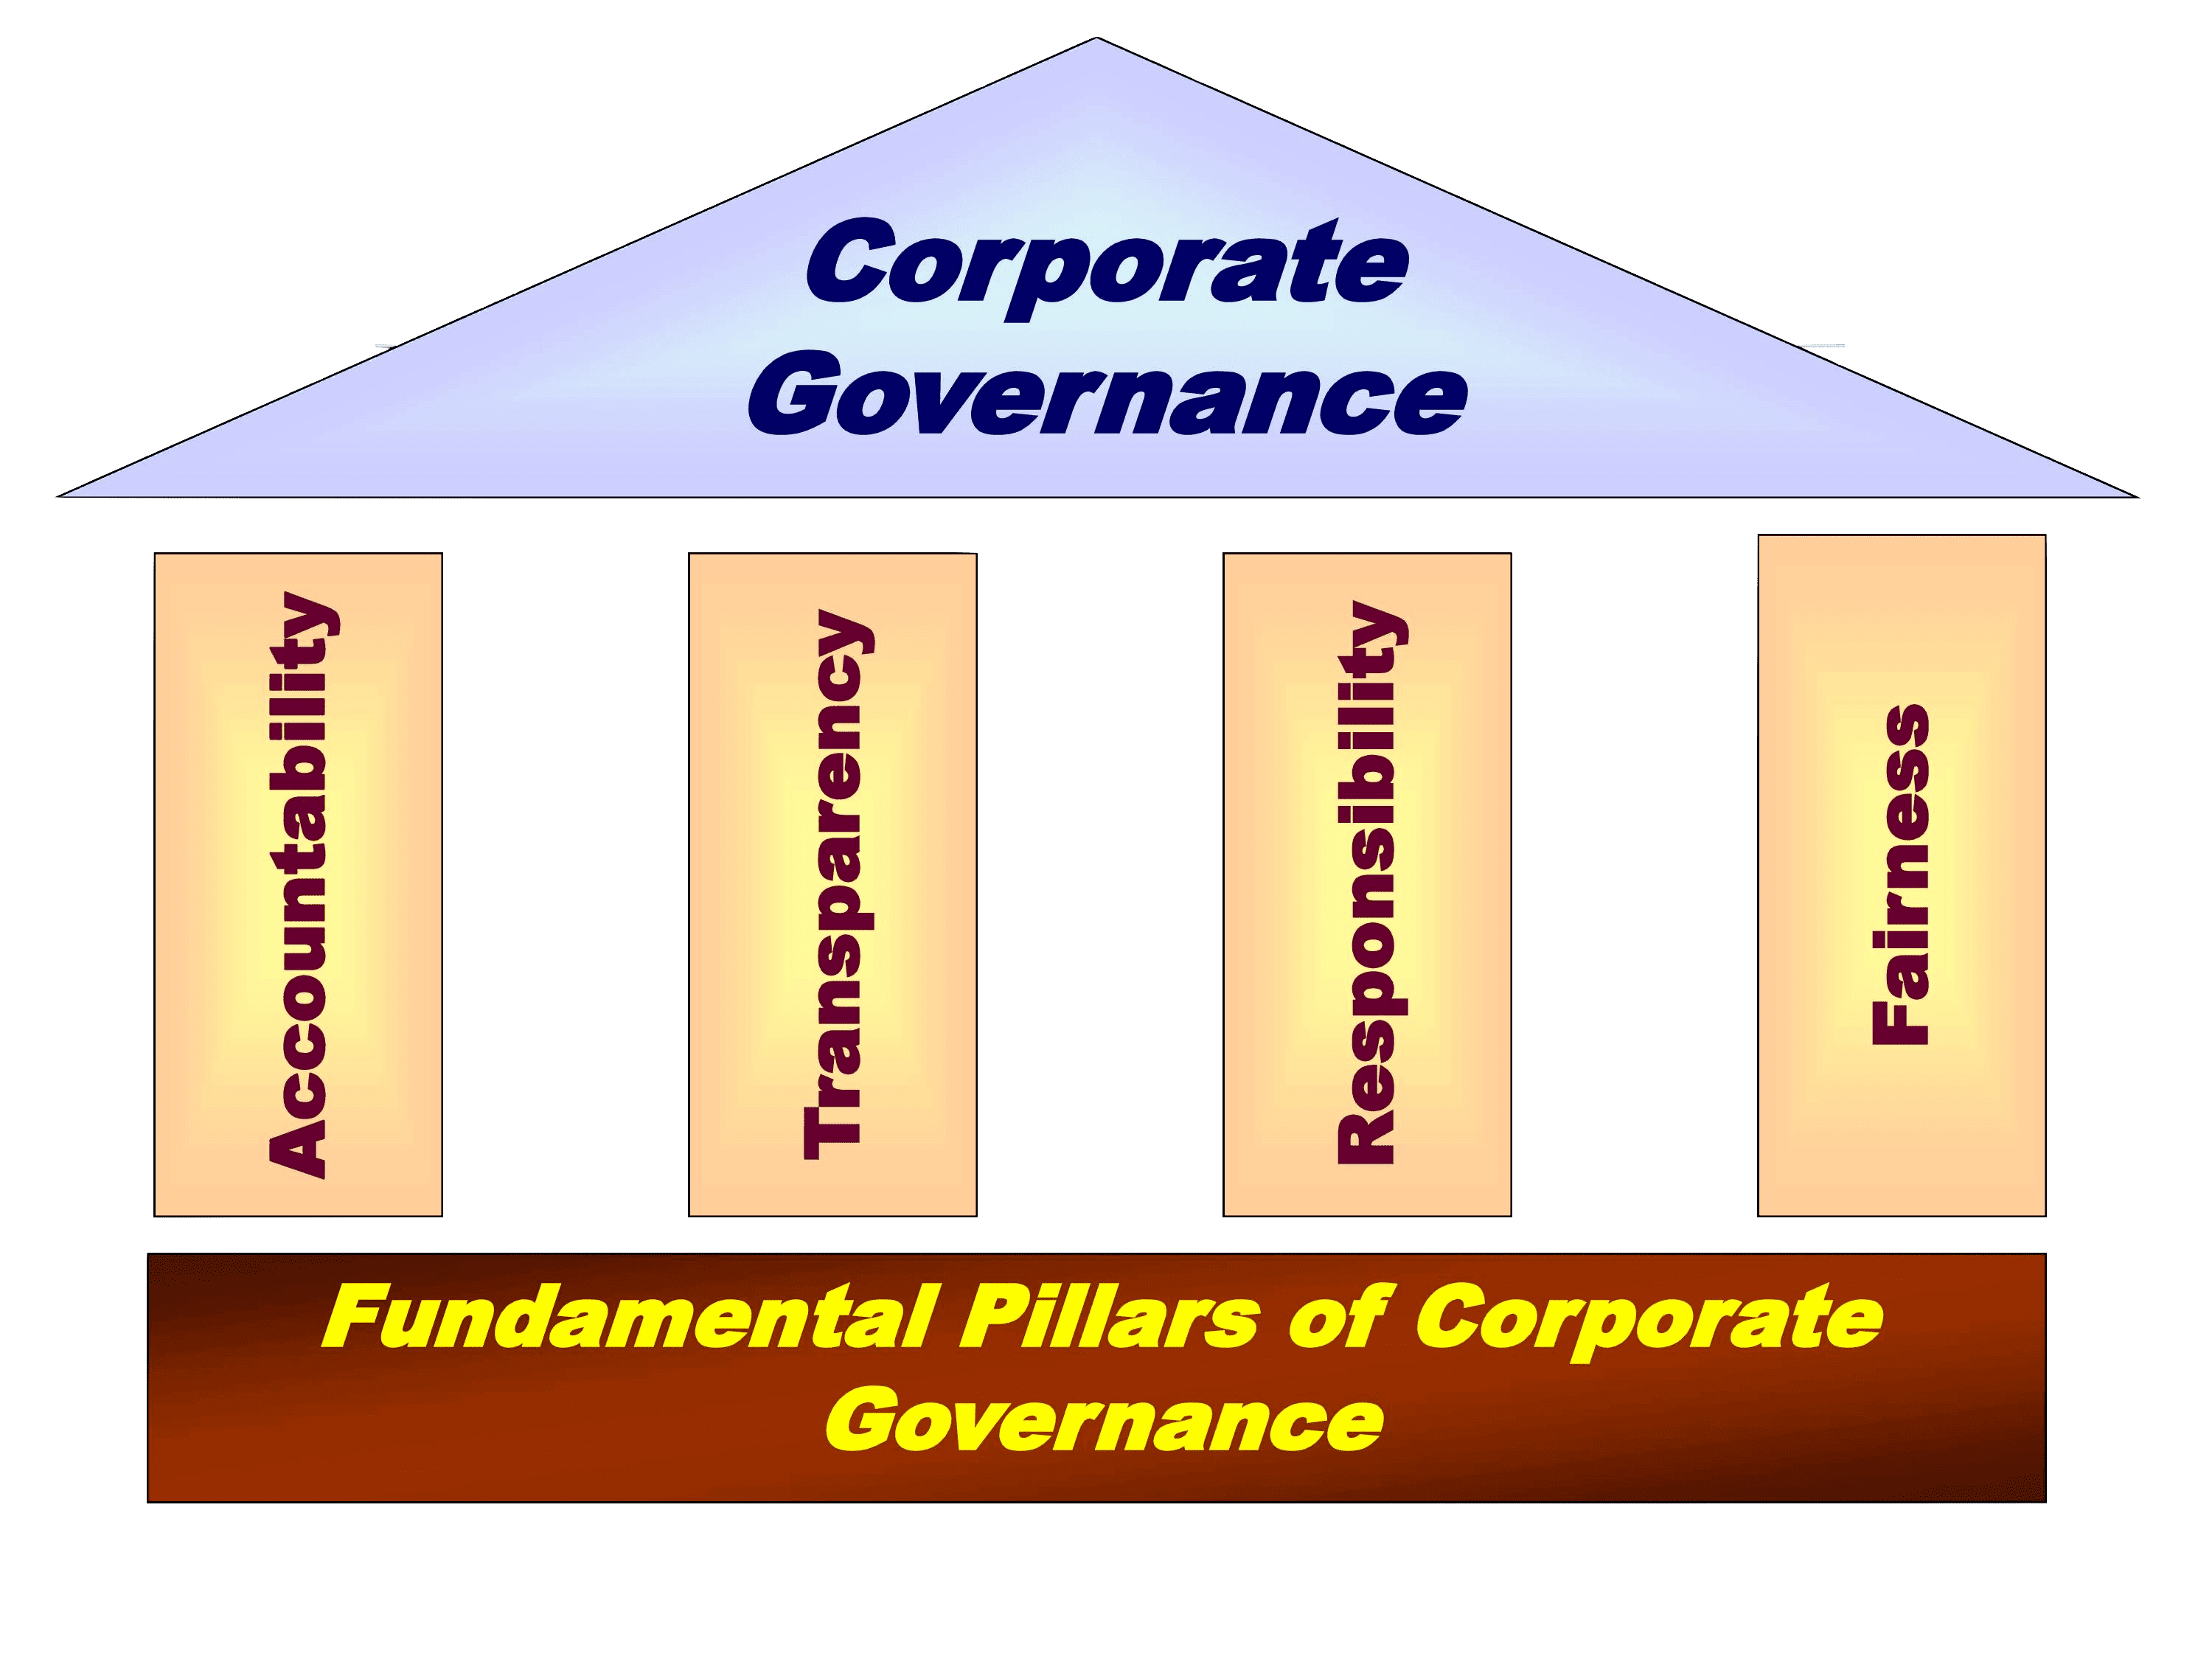 corporate governance pillars